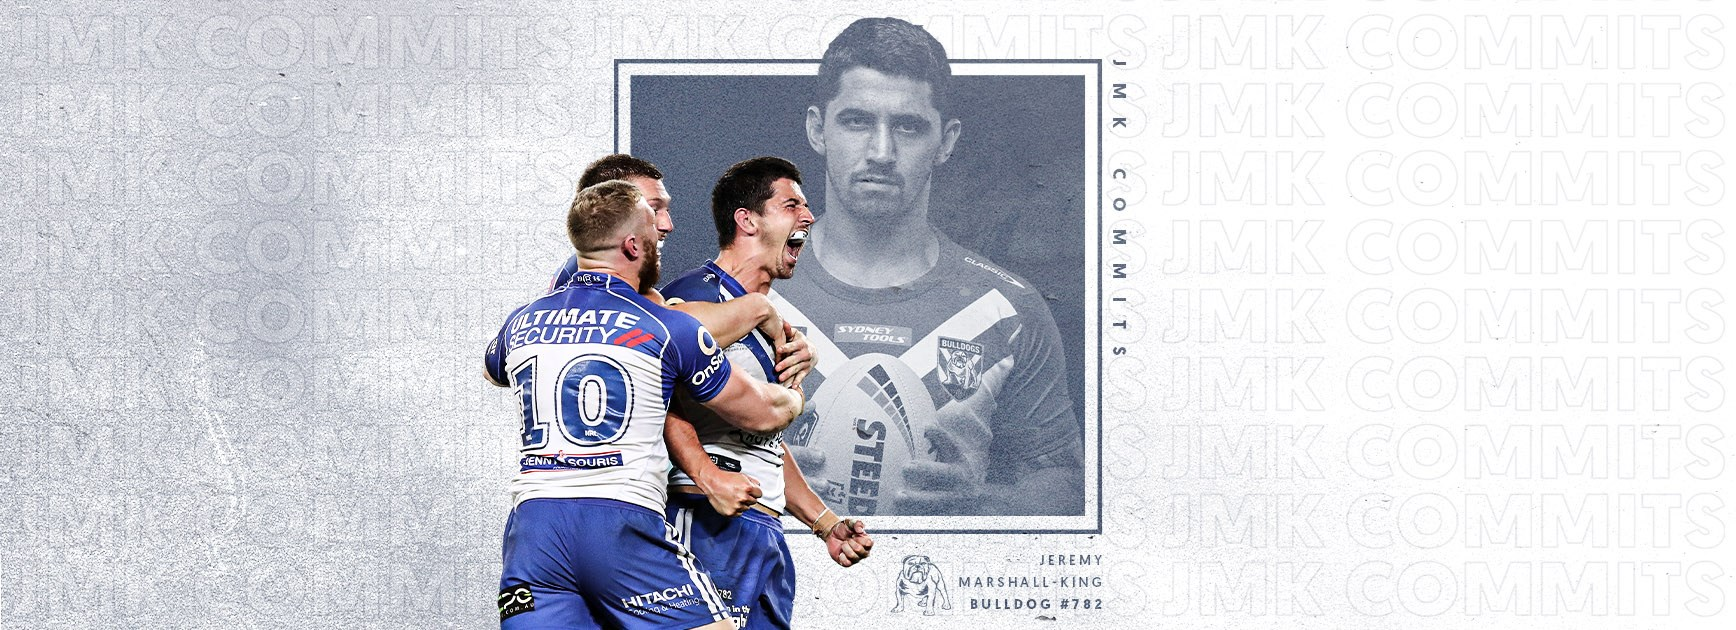 Jeremy Marshall-King re-signs with the Bulldogs for the next two seasons